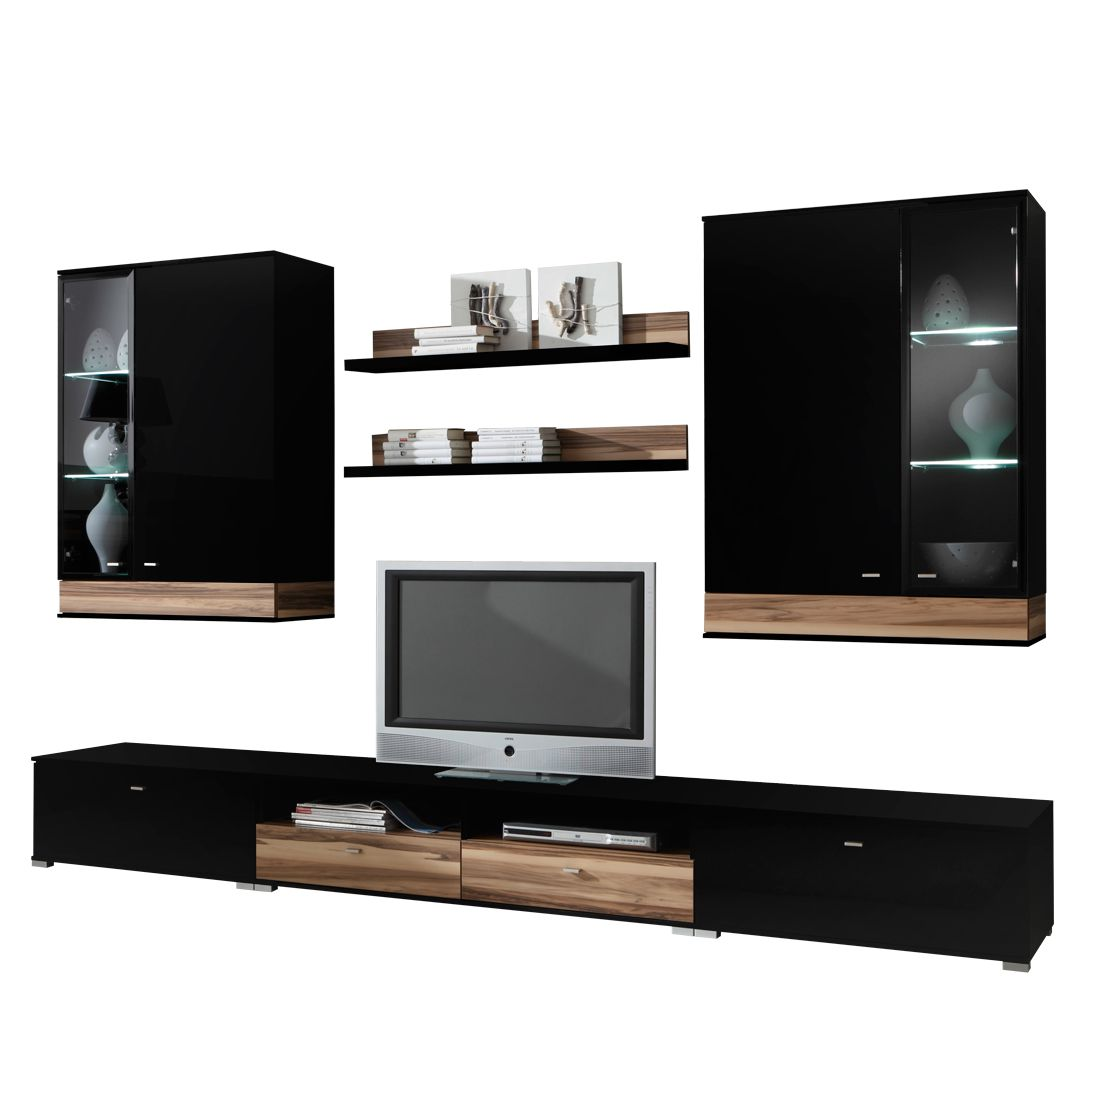 wohnwand nussbaum schwarz poco interessante. Black Bedroom Furniture Sets. Home Design Ideas